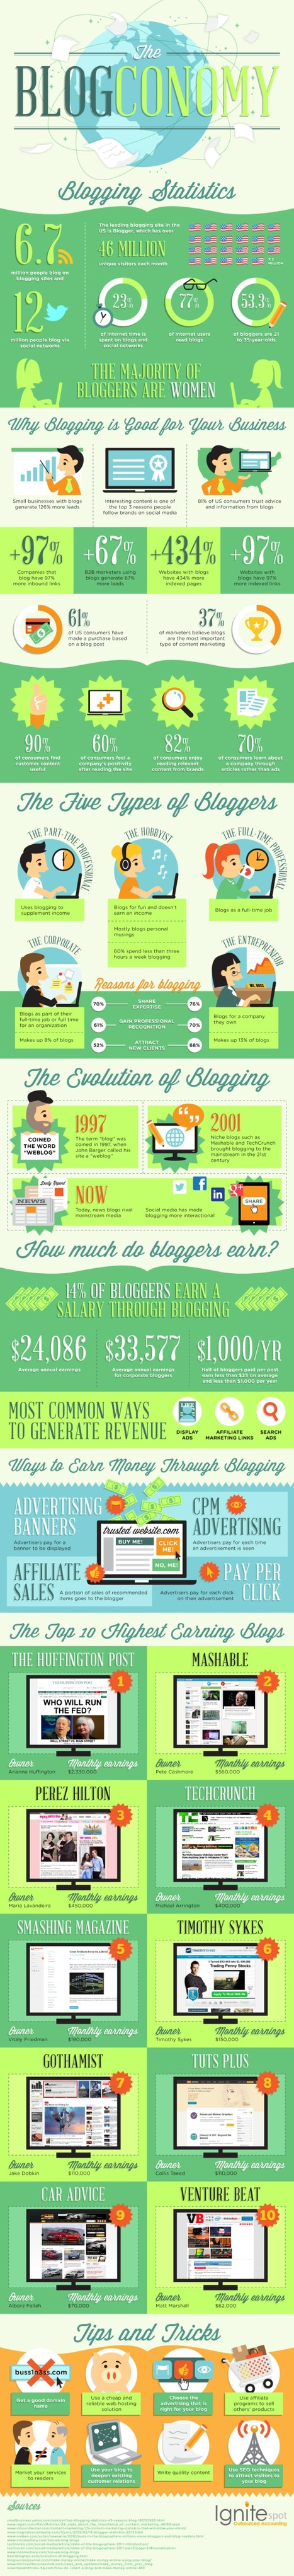 Infographic: The Blogconomy and Blogging Stats | Blogging | Scoop.it